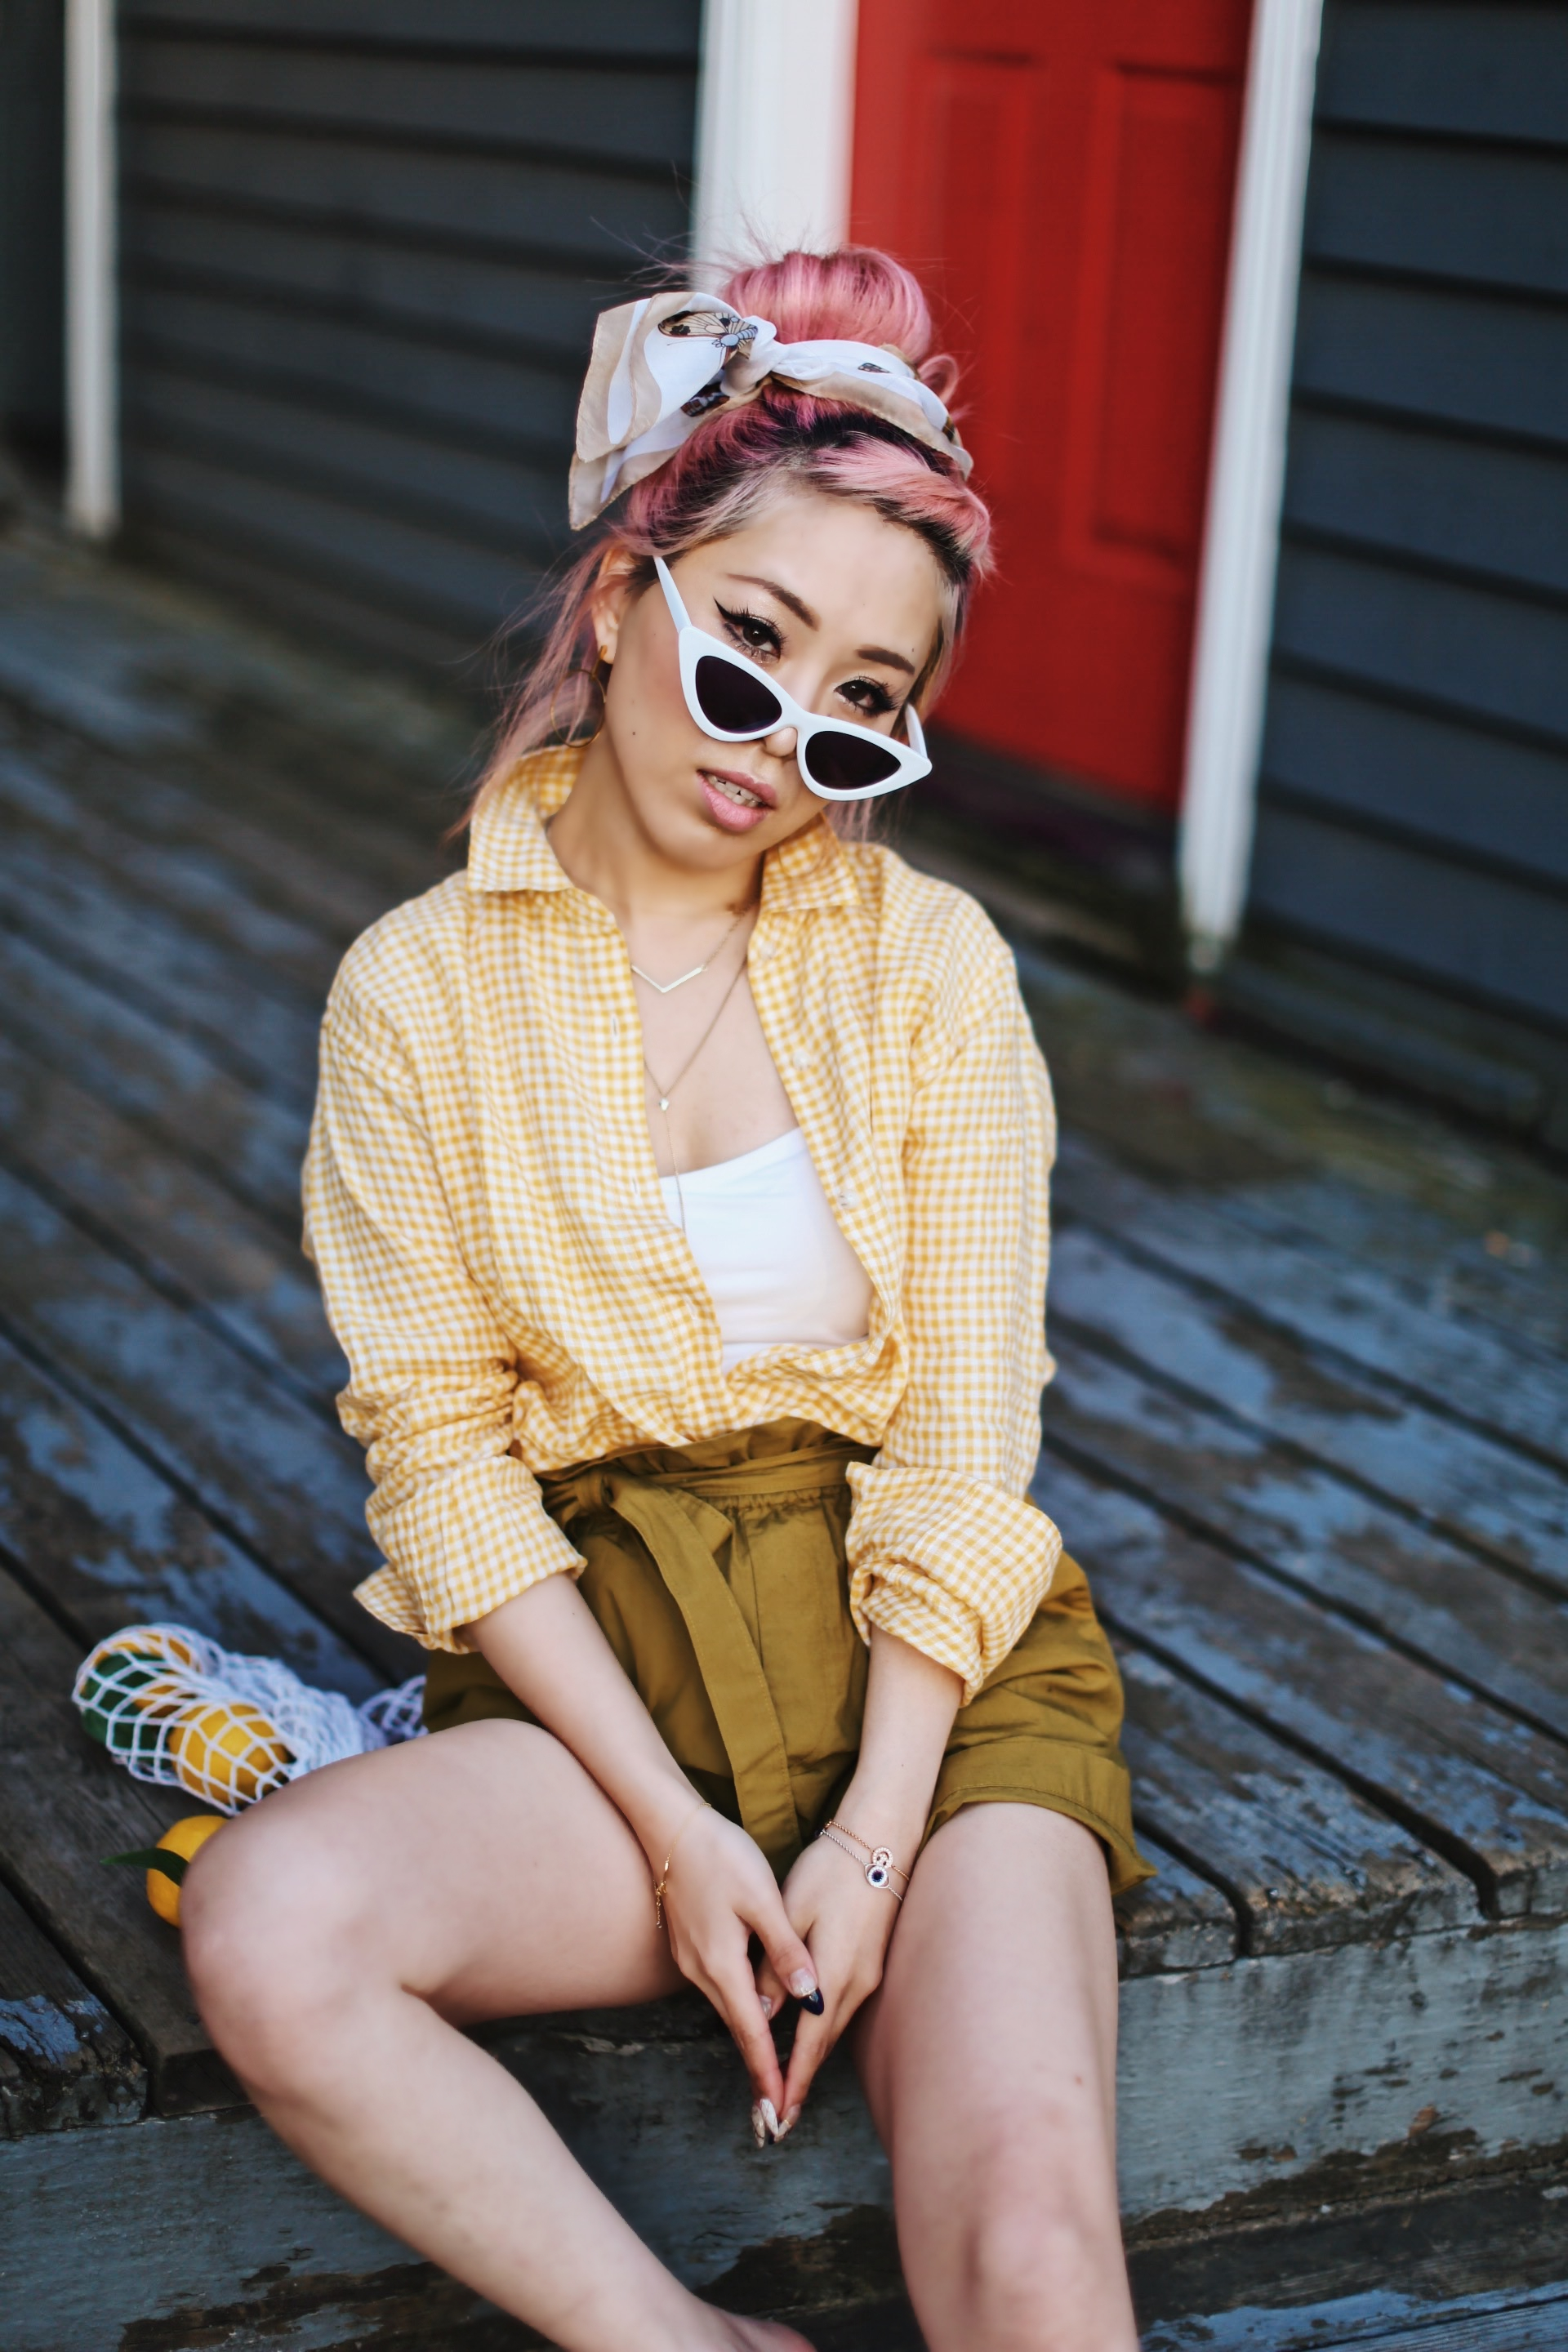 Uniqlo yellow Linen gingham shirt-Uniqlo olive paperbag shorts-Uniqlo Airism bratop-White Cat eye sunglasses ZERO UV- Pipe + Row White net bag-Vintage scarf bun hairstyle-ALDO Embroidered Nude mules-Aika's Love Closet-seattle fashion style blogger-Japanese-pink hair-smiling-spring fashion 10